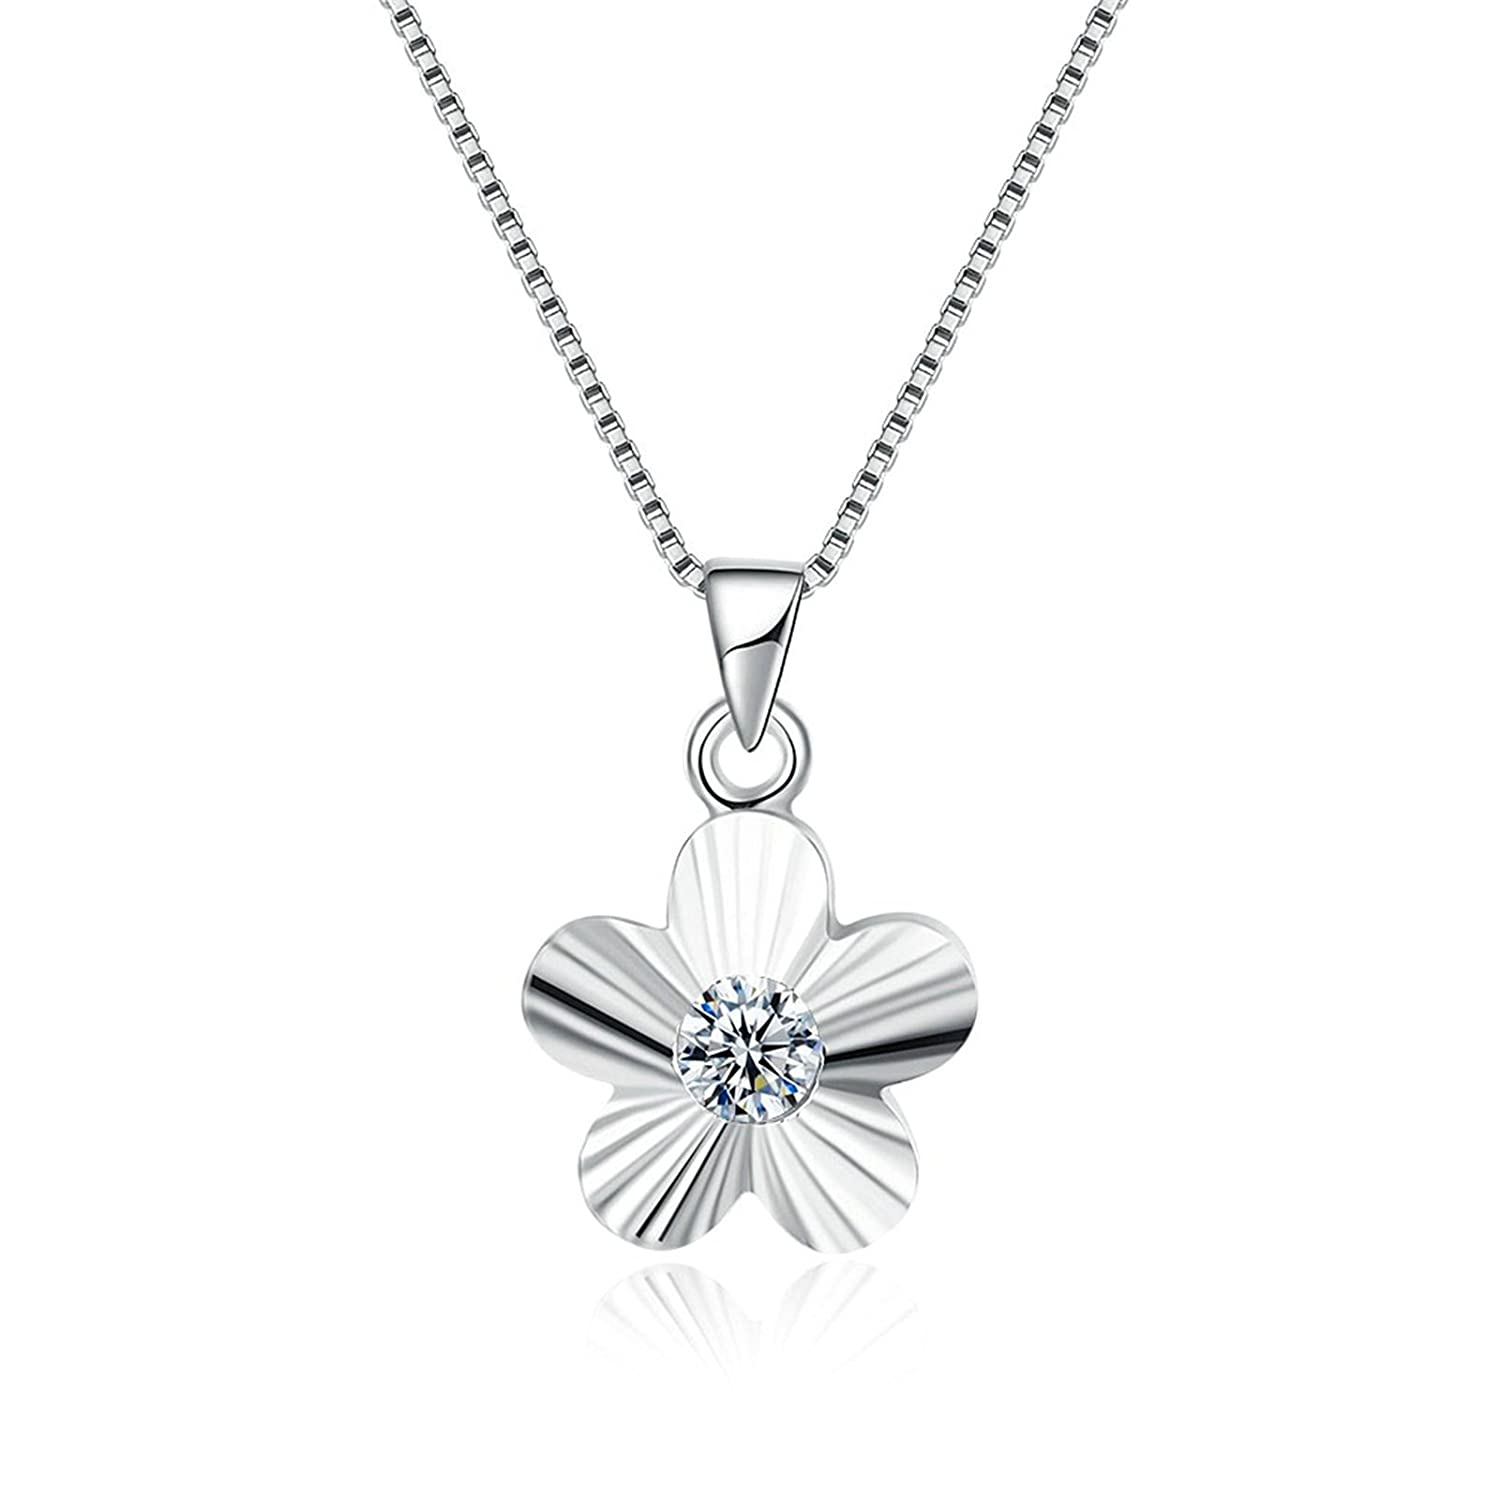 Adisaer Womens Silver Pendant Necklaces Five Petal Flower Type White Crystal Extender Chain 15.7 2